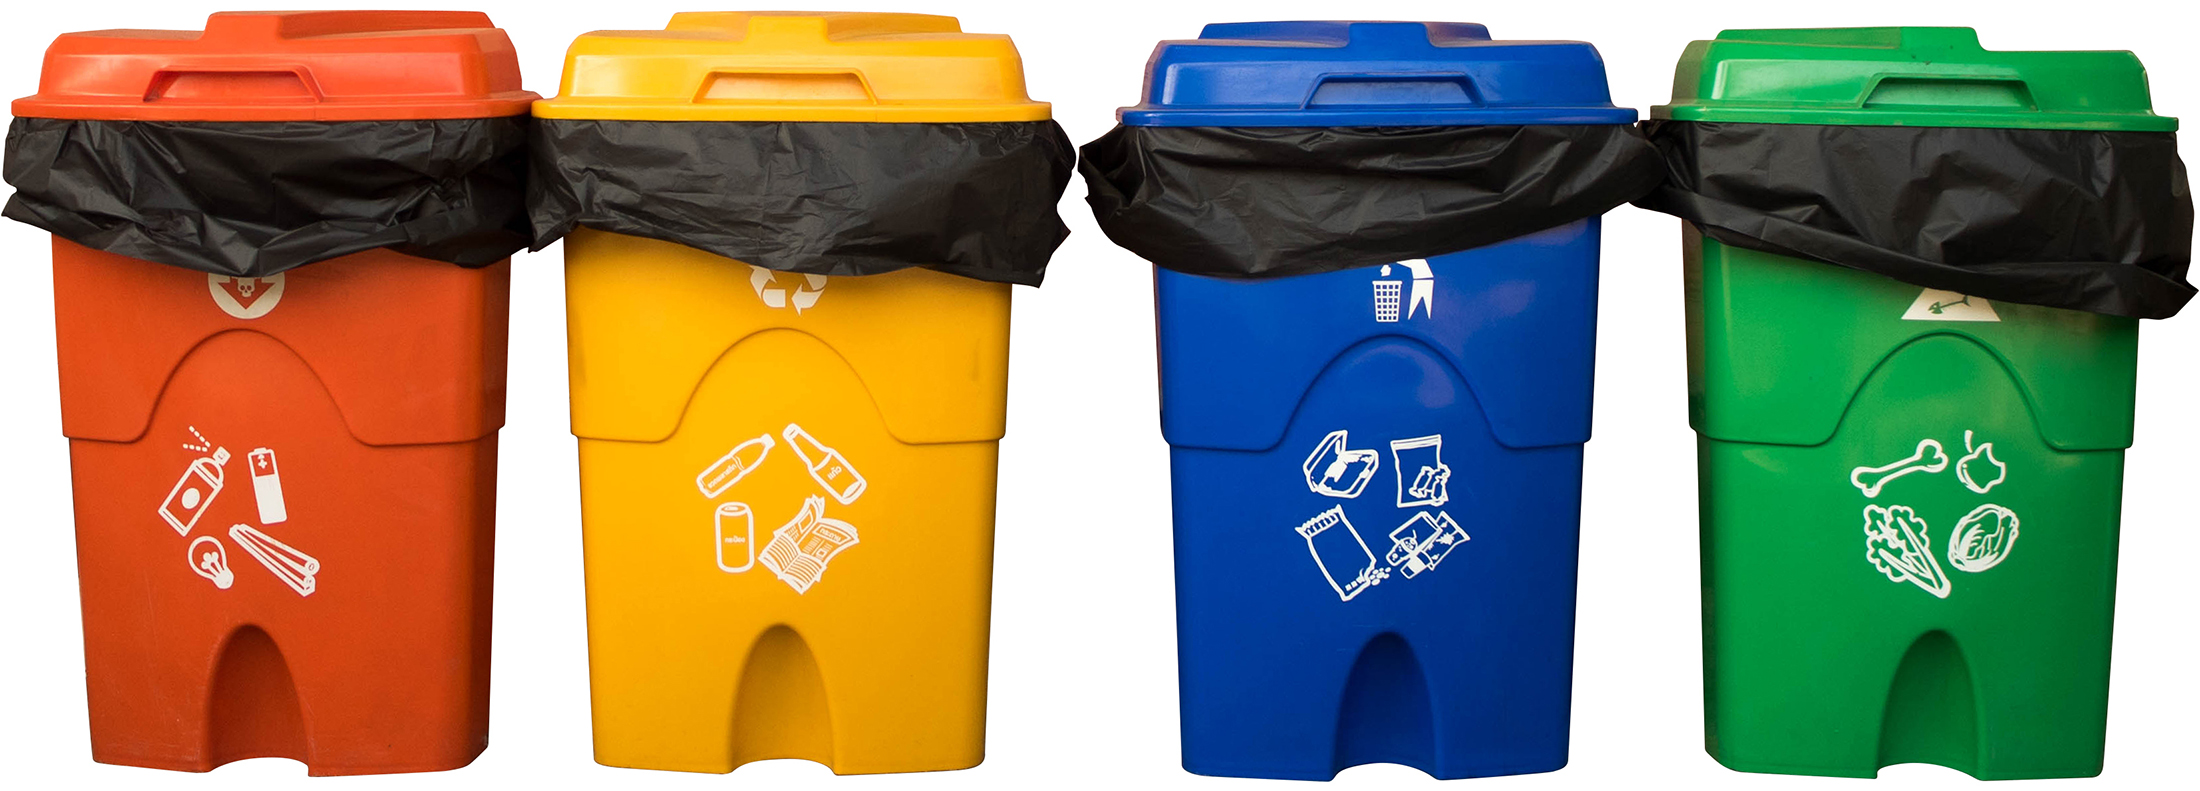 Three colorful recycle bins isolated on white background with the clipping path. Selection path.